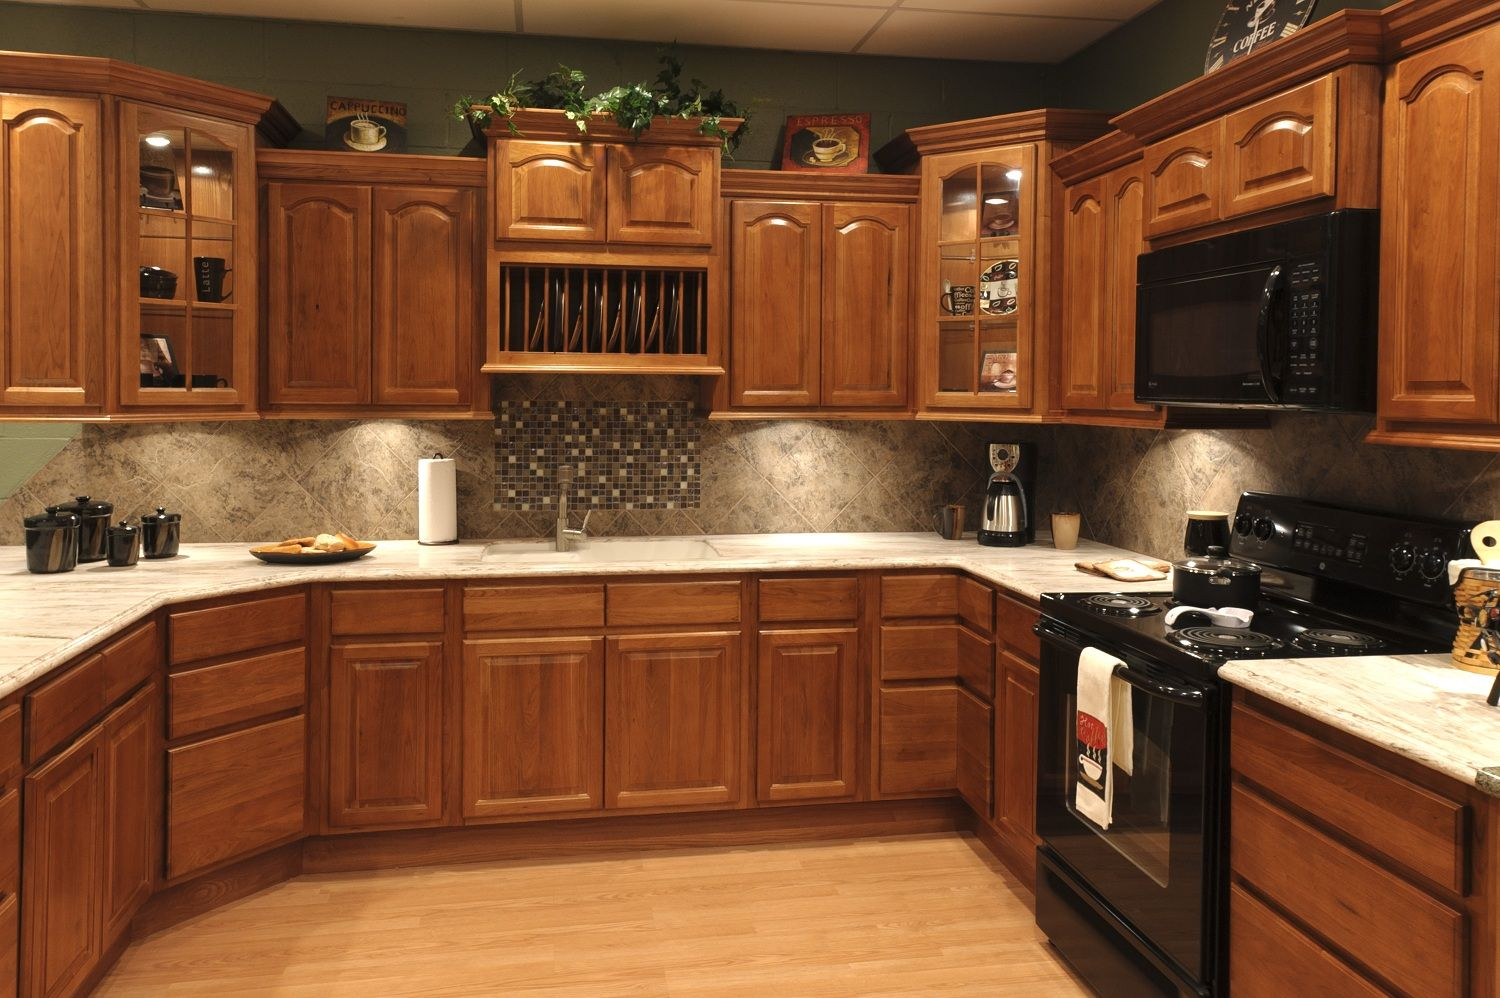 Beautiful kitchen cabinets windy hill hardwoods for Beautiful kitchen units designs